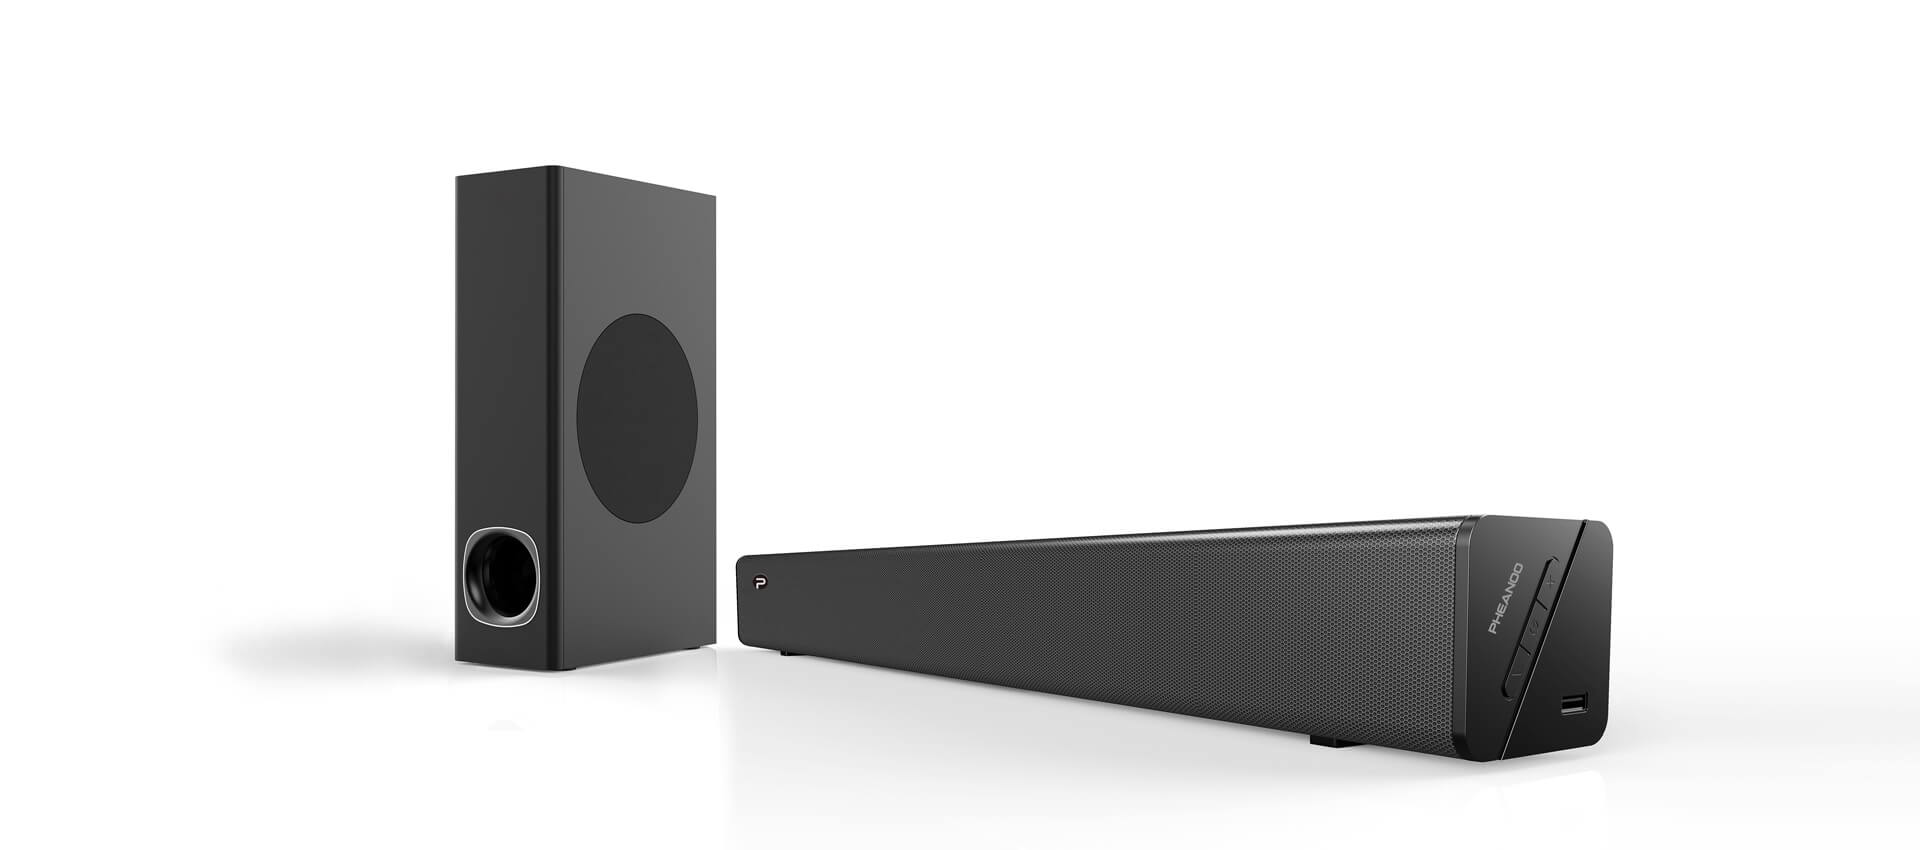 Pheanoo Audio Ltd Introduces New Sense of Sound Bars With Top-Notch Quality Features To Enjoy Top Sound Experience